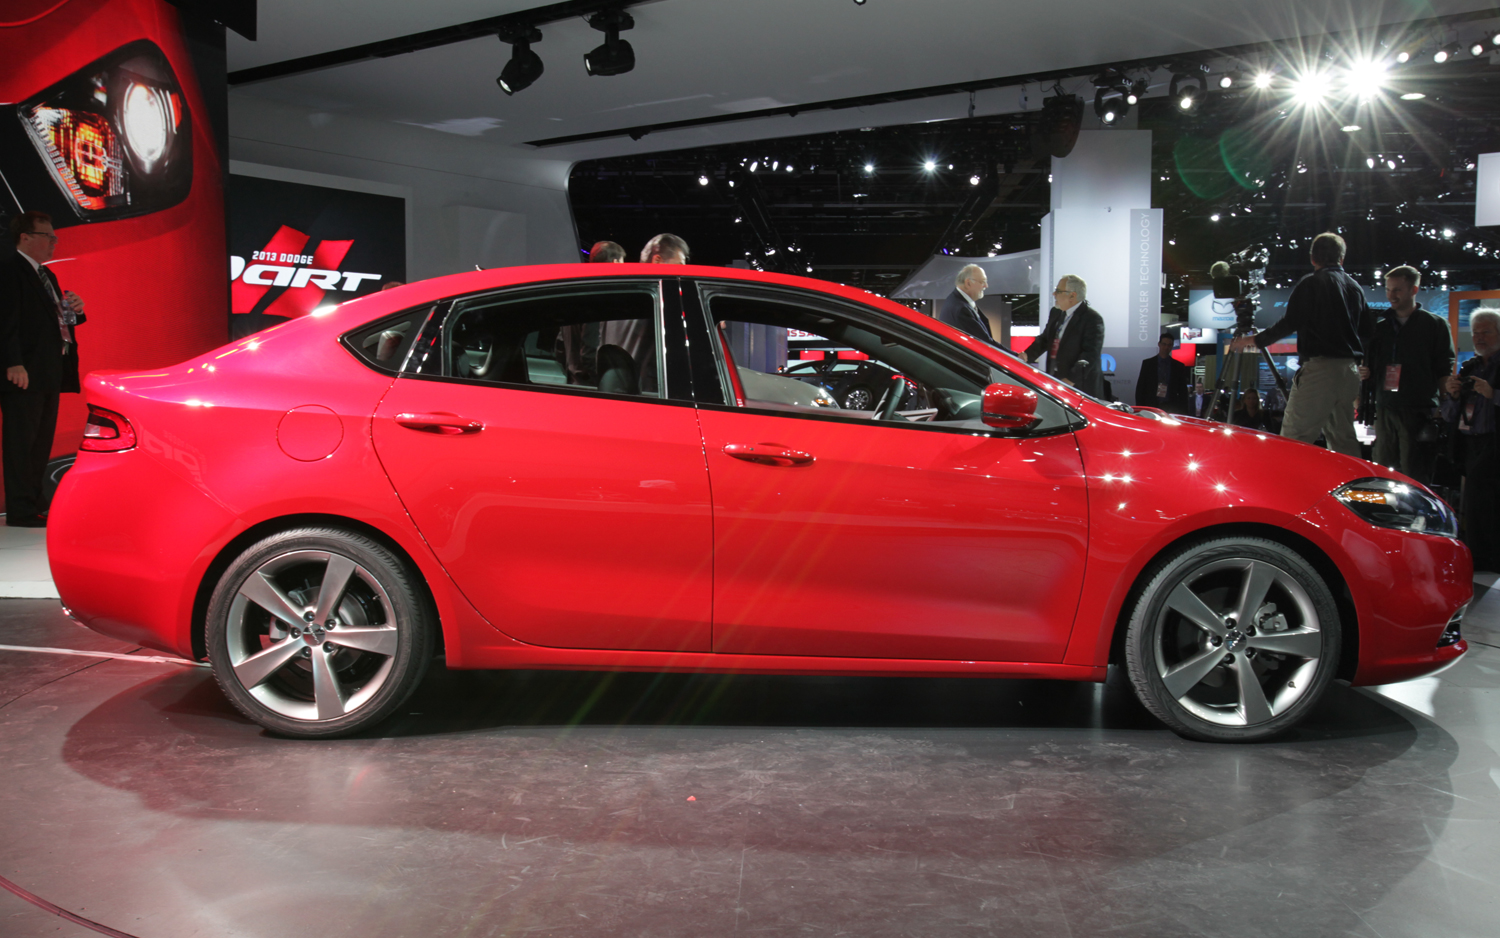 2013 Dodge Dart Side View